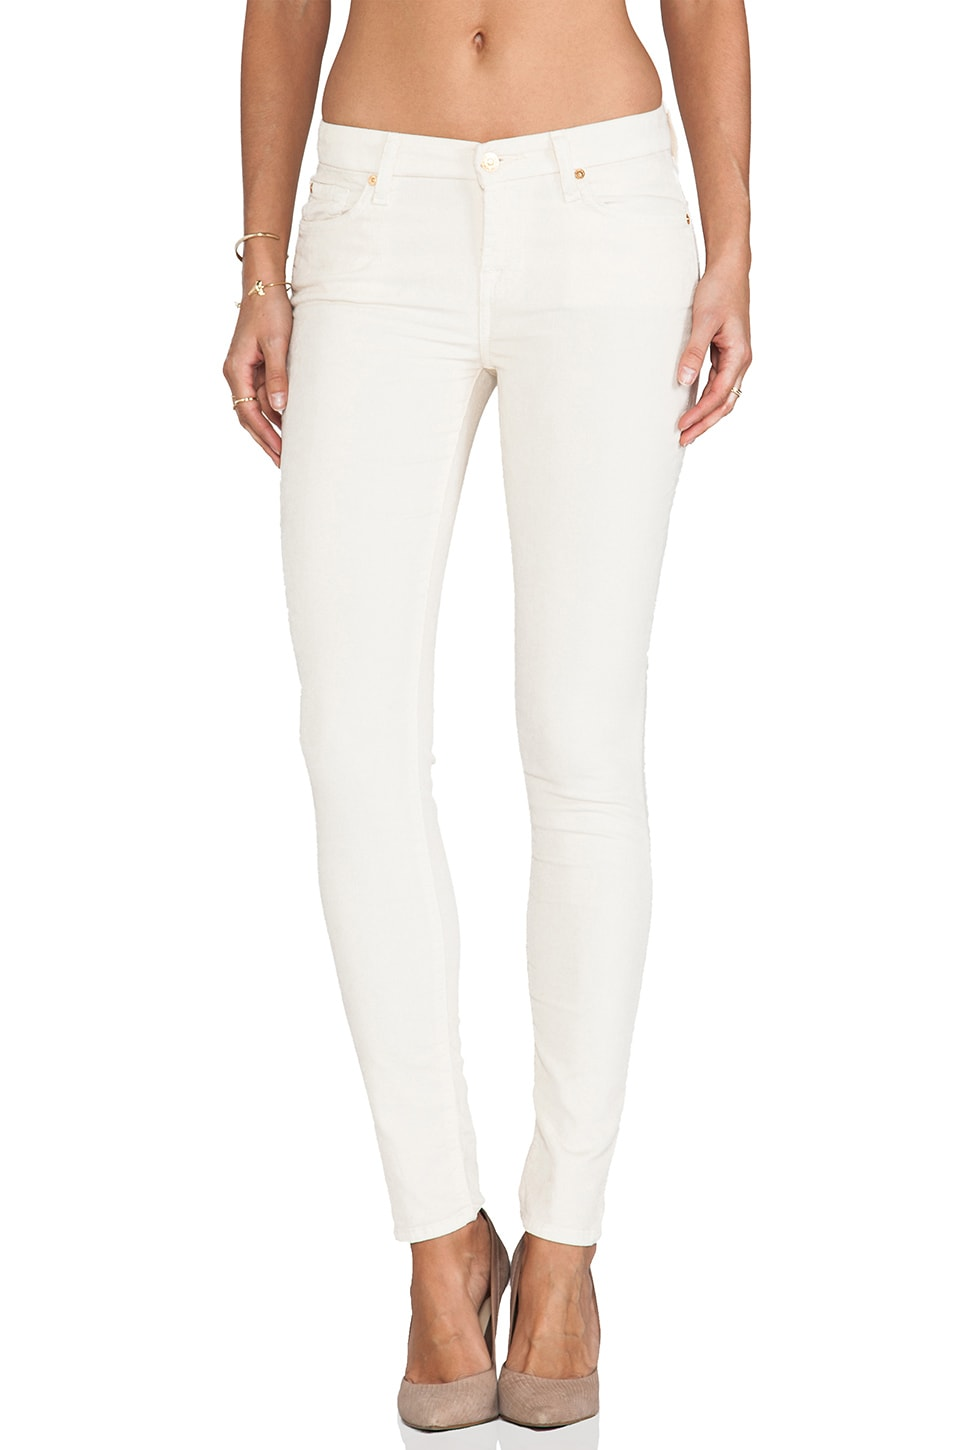 7 For All Mankind The Skinny in Alabaster White